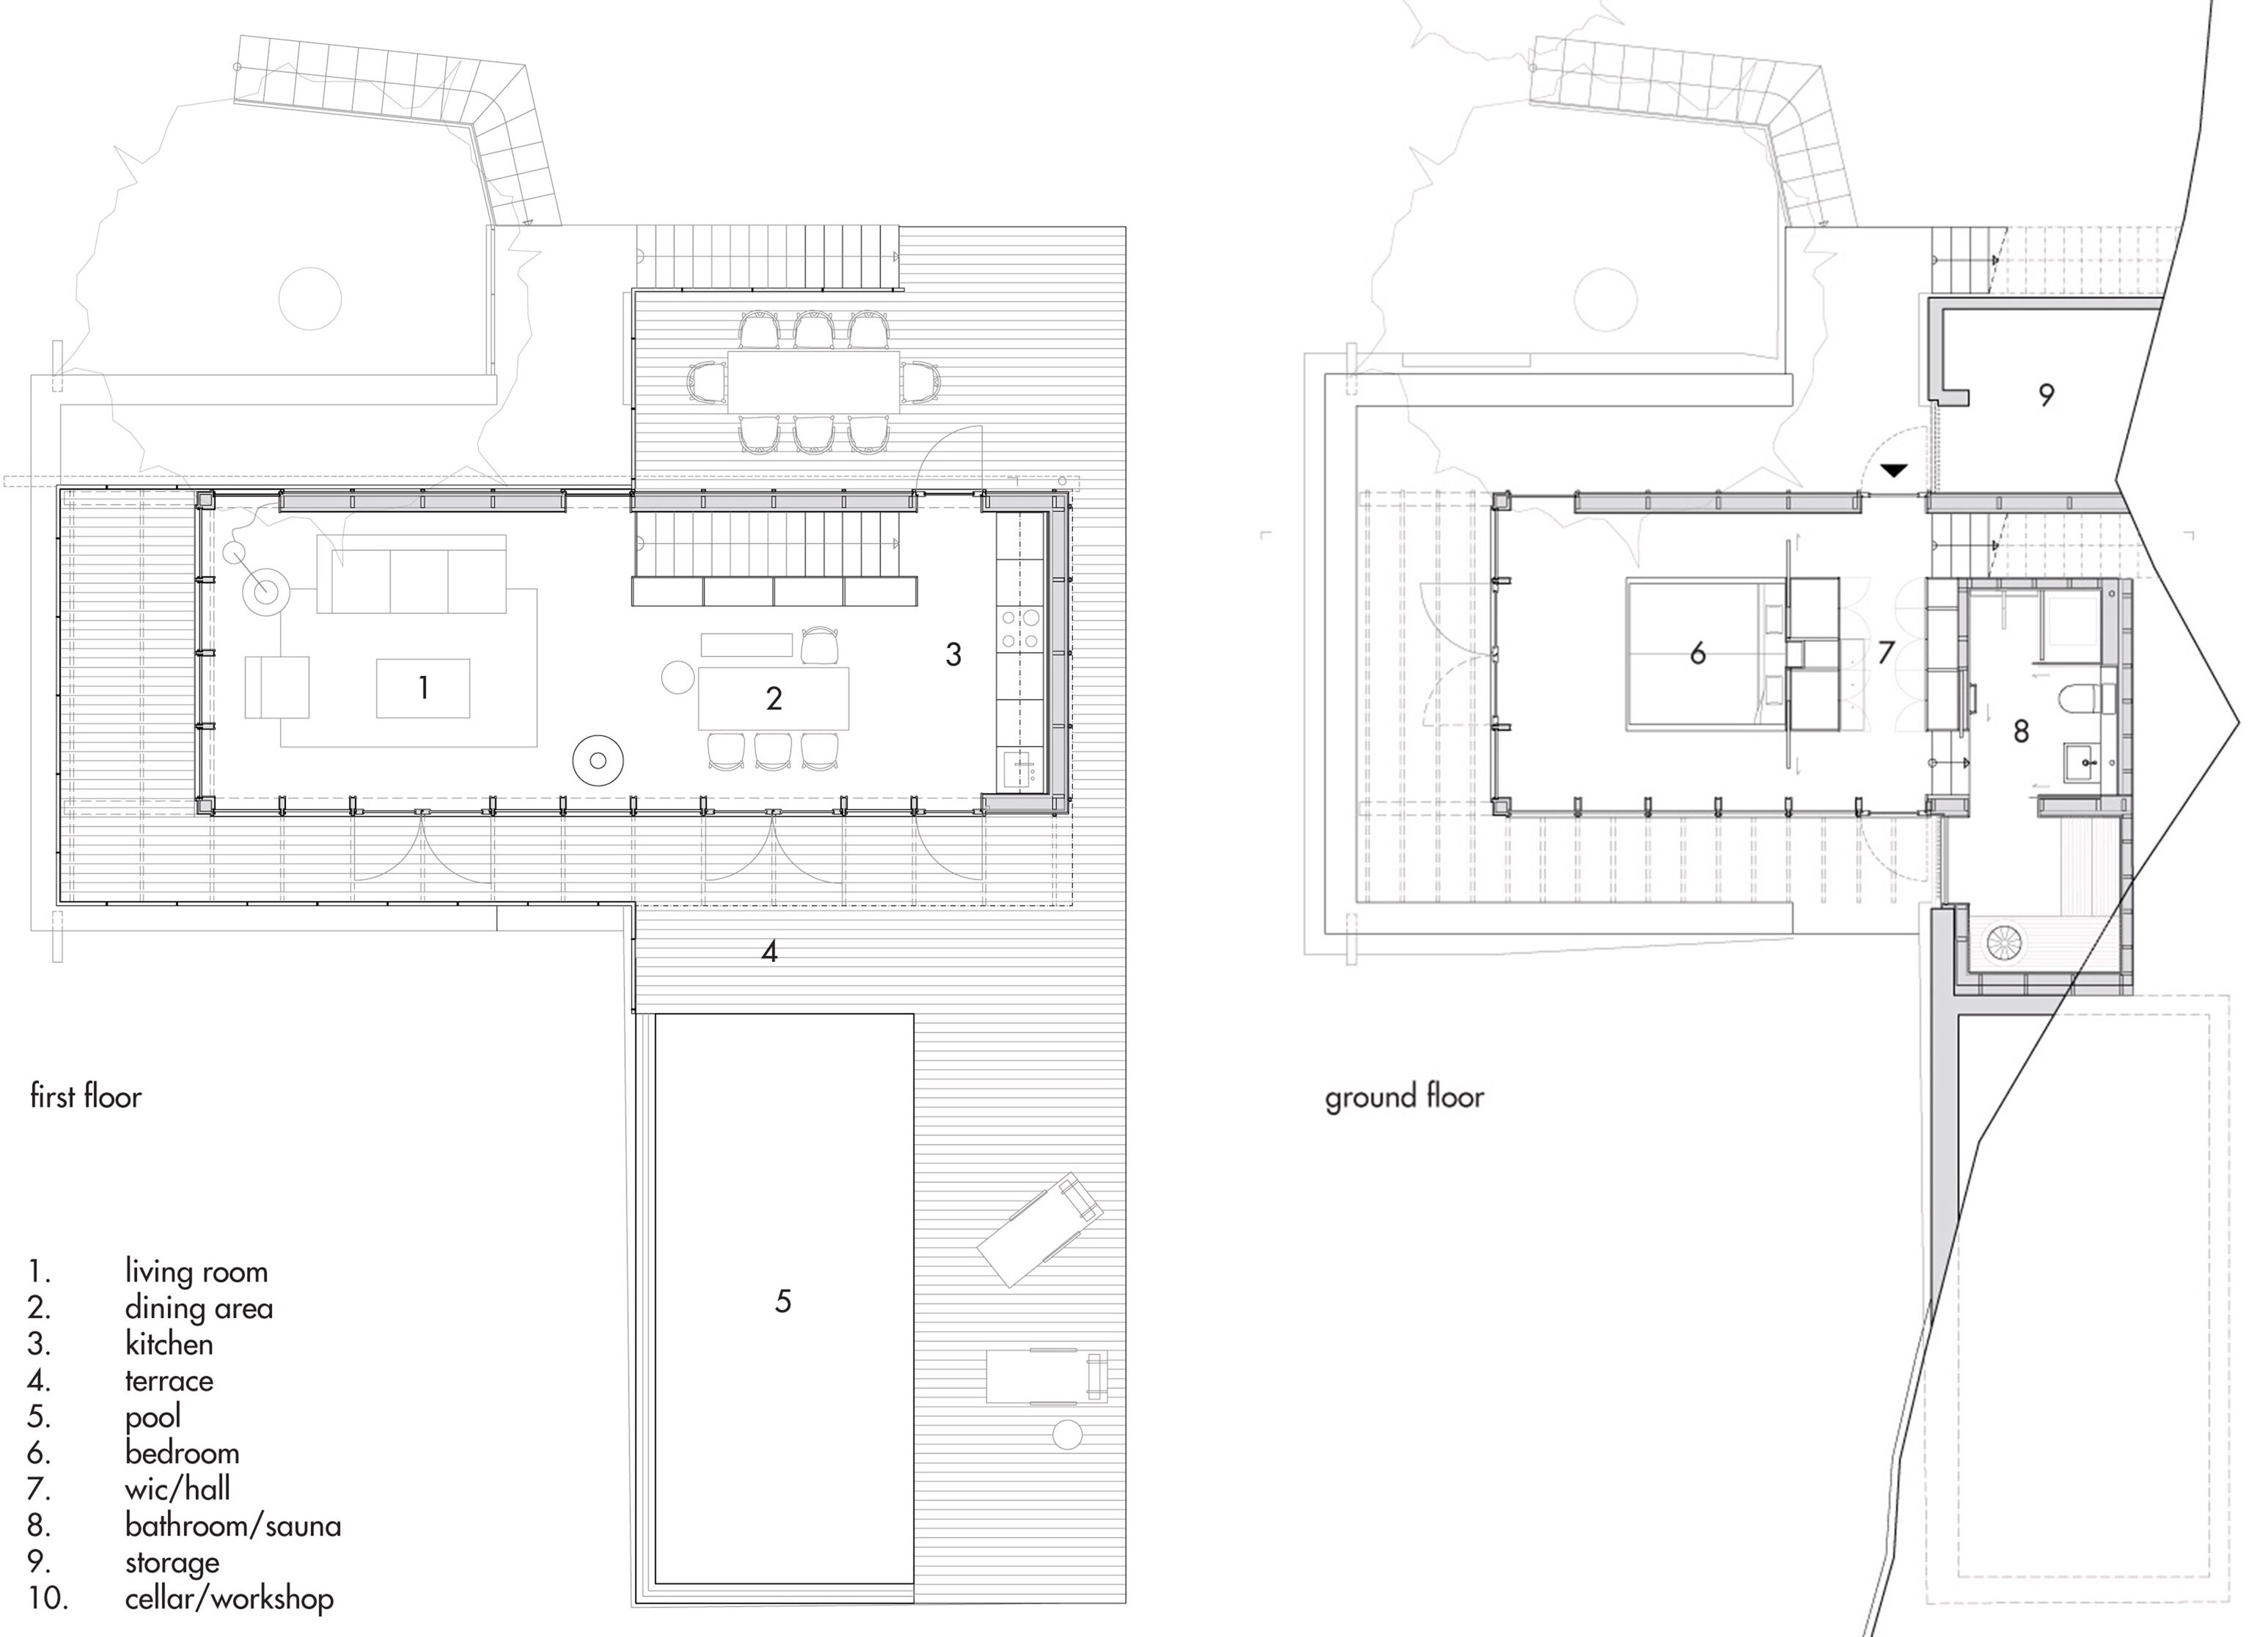 Aspvik House - Small House - Andreas Martin Löf Arkitekter - Sweden - Floor Plans - Humble Homes